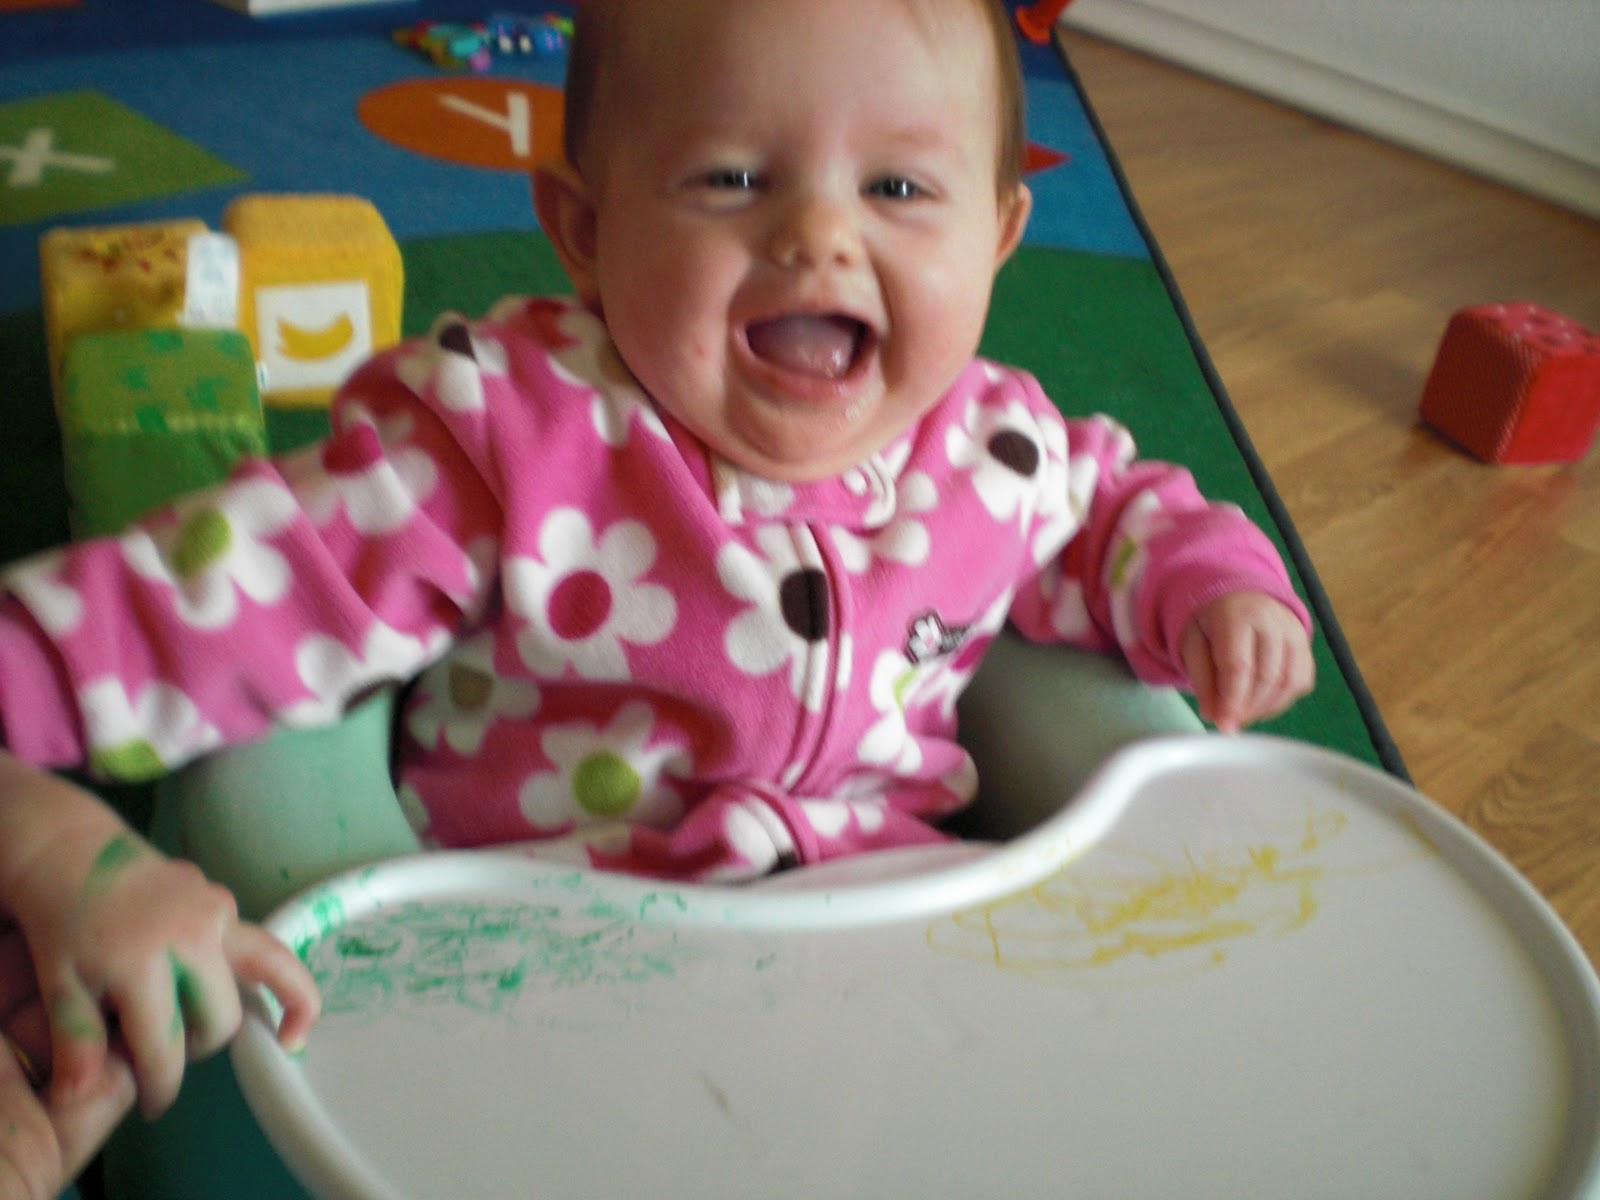 Parenting With Research Art With Babies